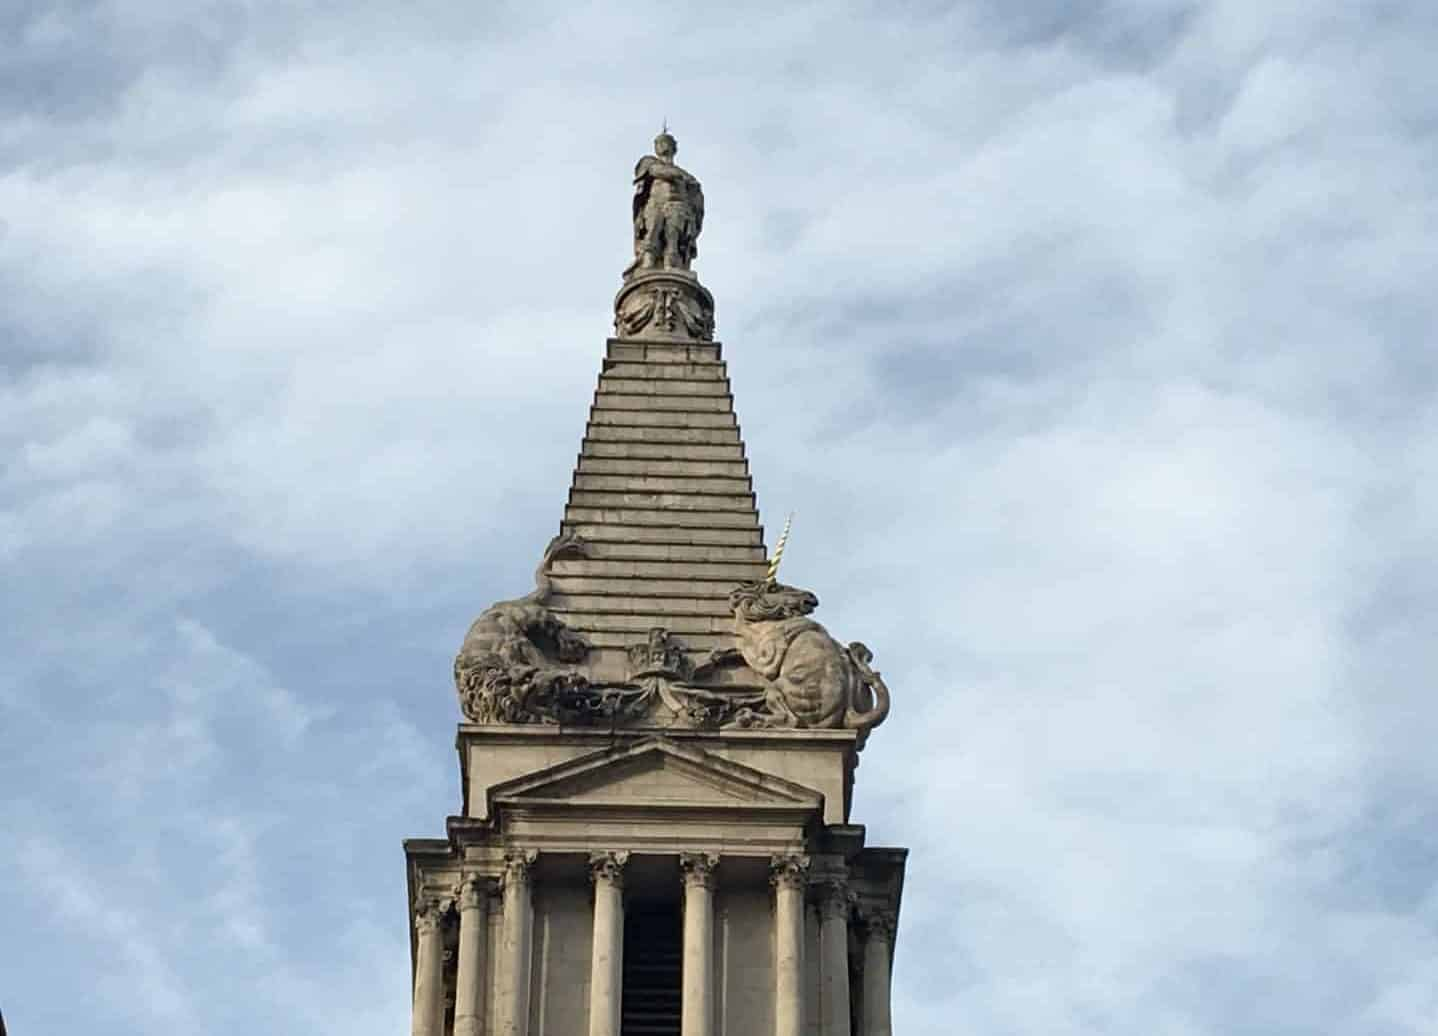 Unusual Steeple in London